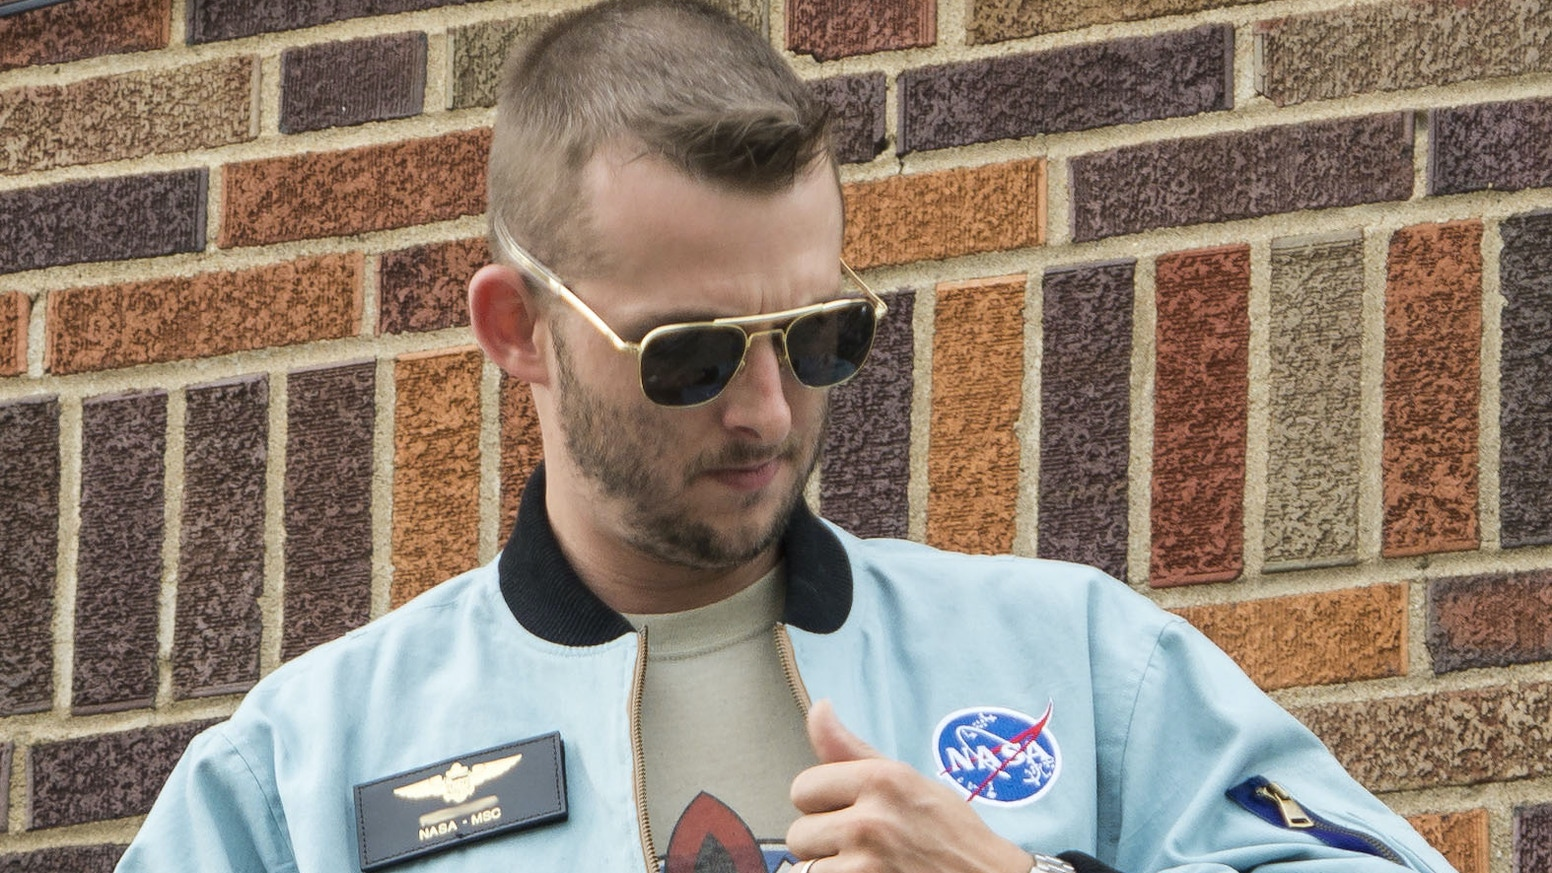 Reproductions of the 1st pattern NASA issued Gemini and Apollo era Astronaut flight jackets.